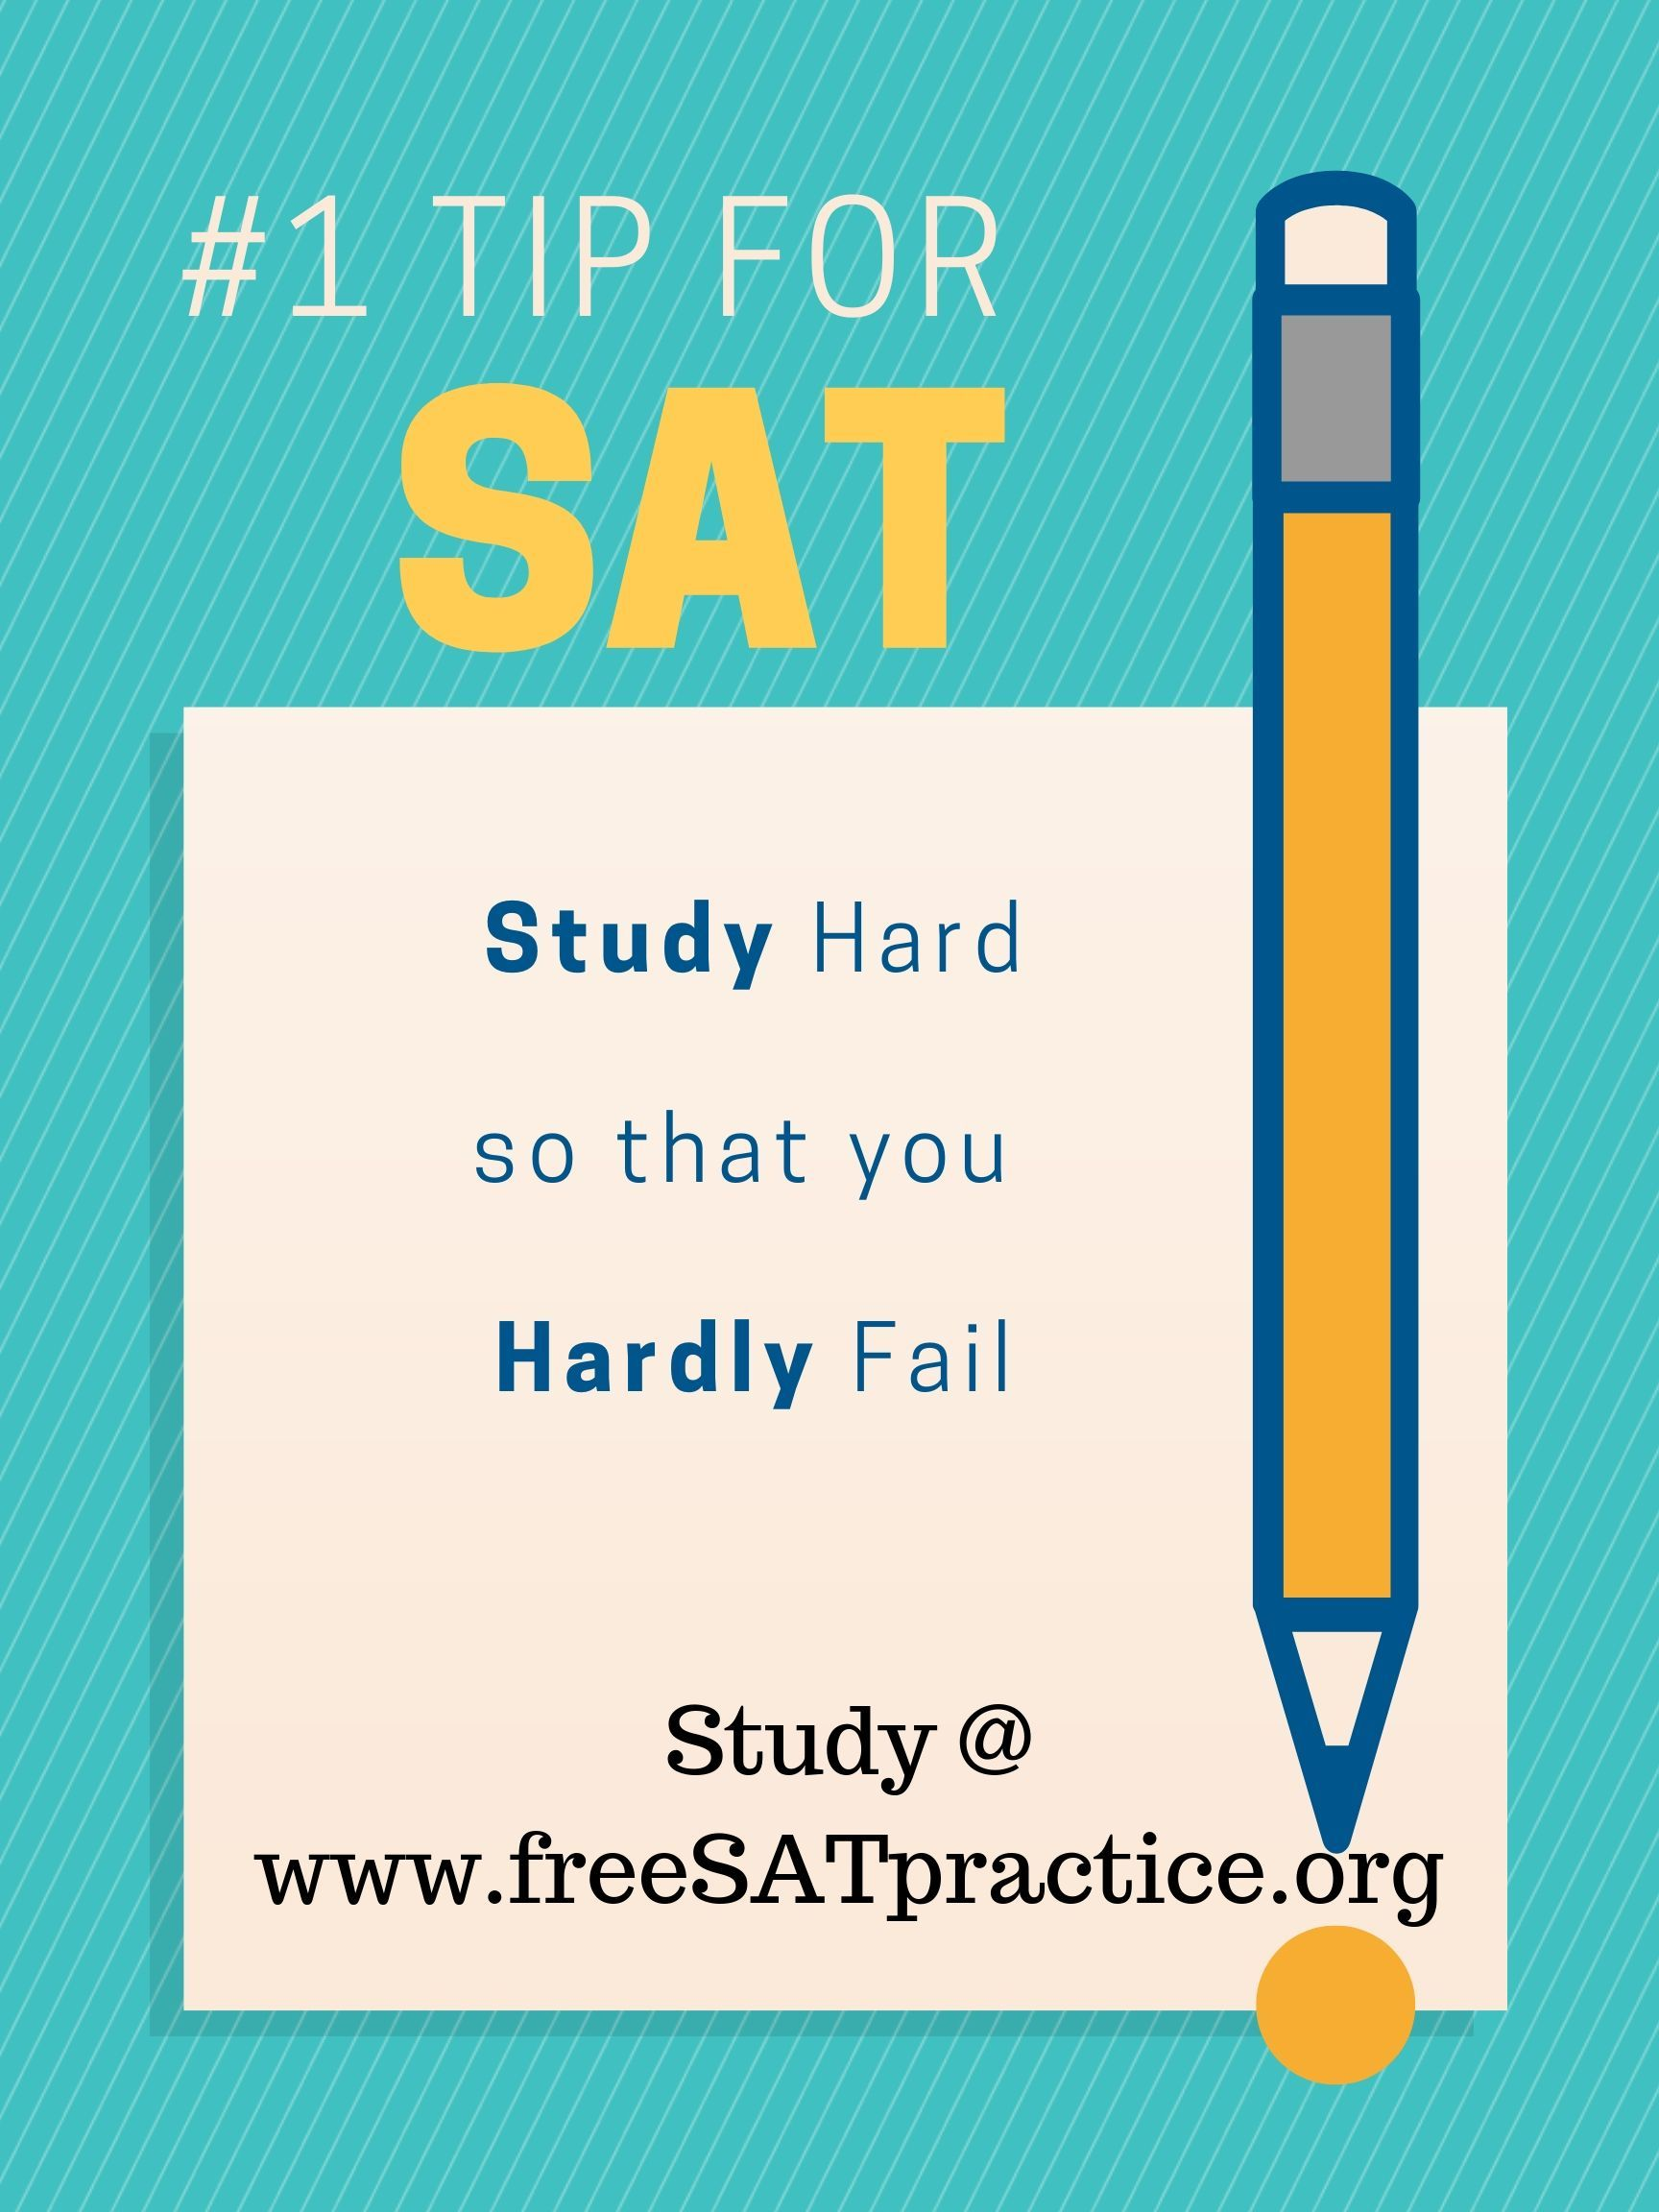 Sat Action Plan How To Study And Prepare For The Sat College Entrance Exam Sat Study Study Guide Prep Book